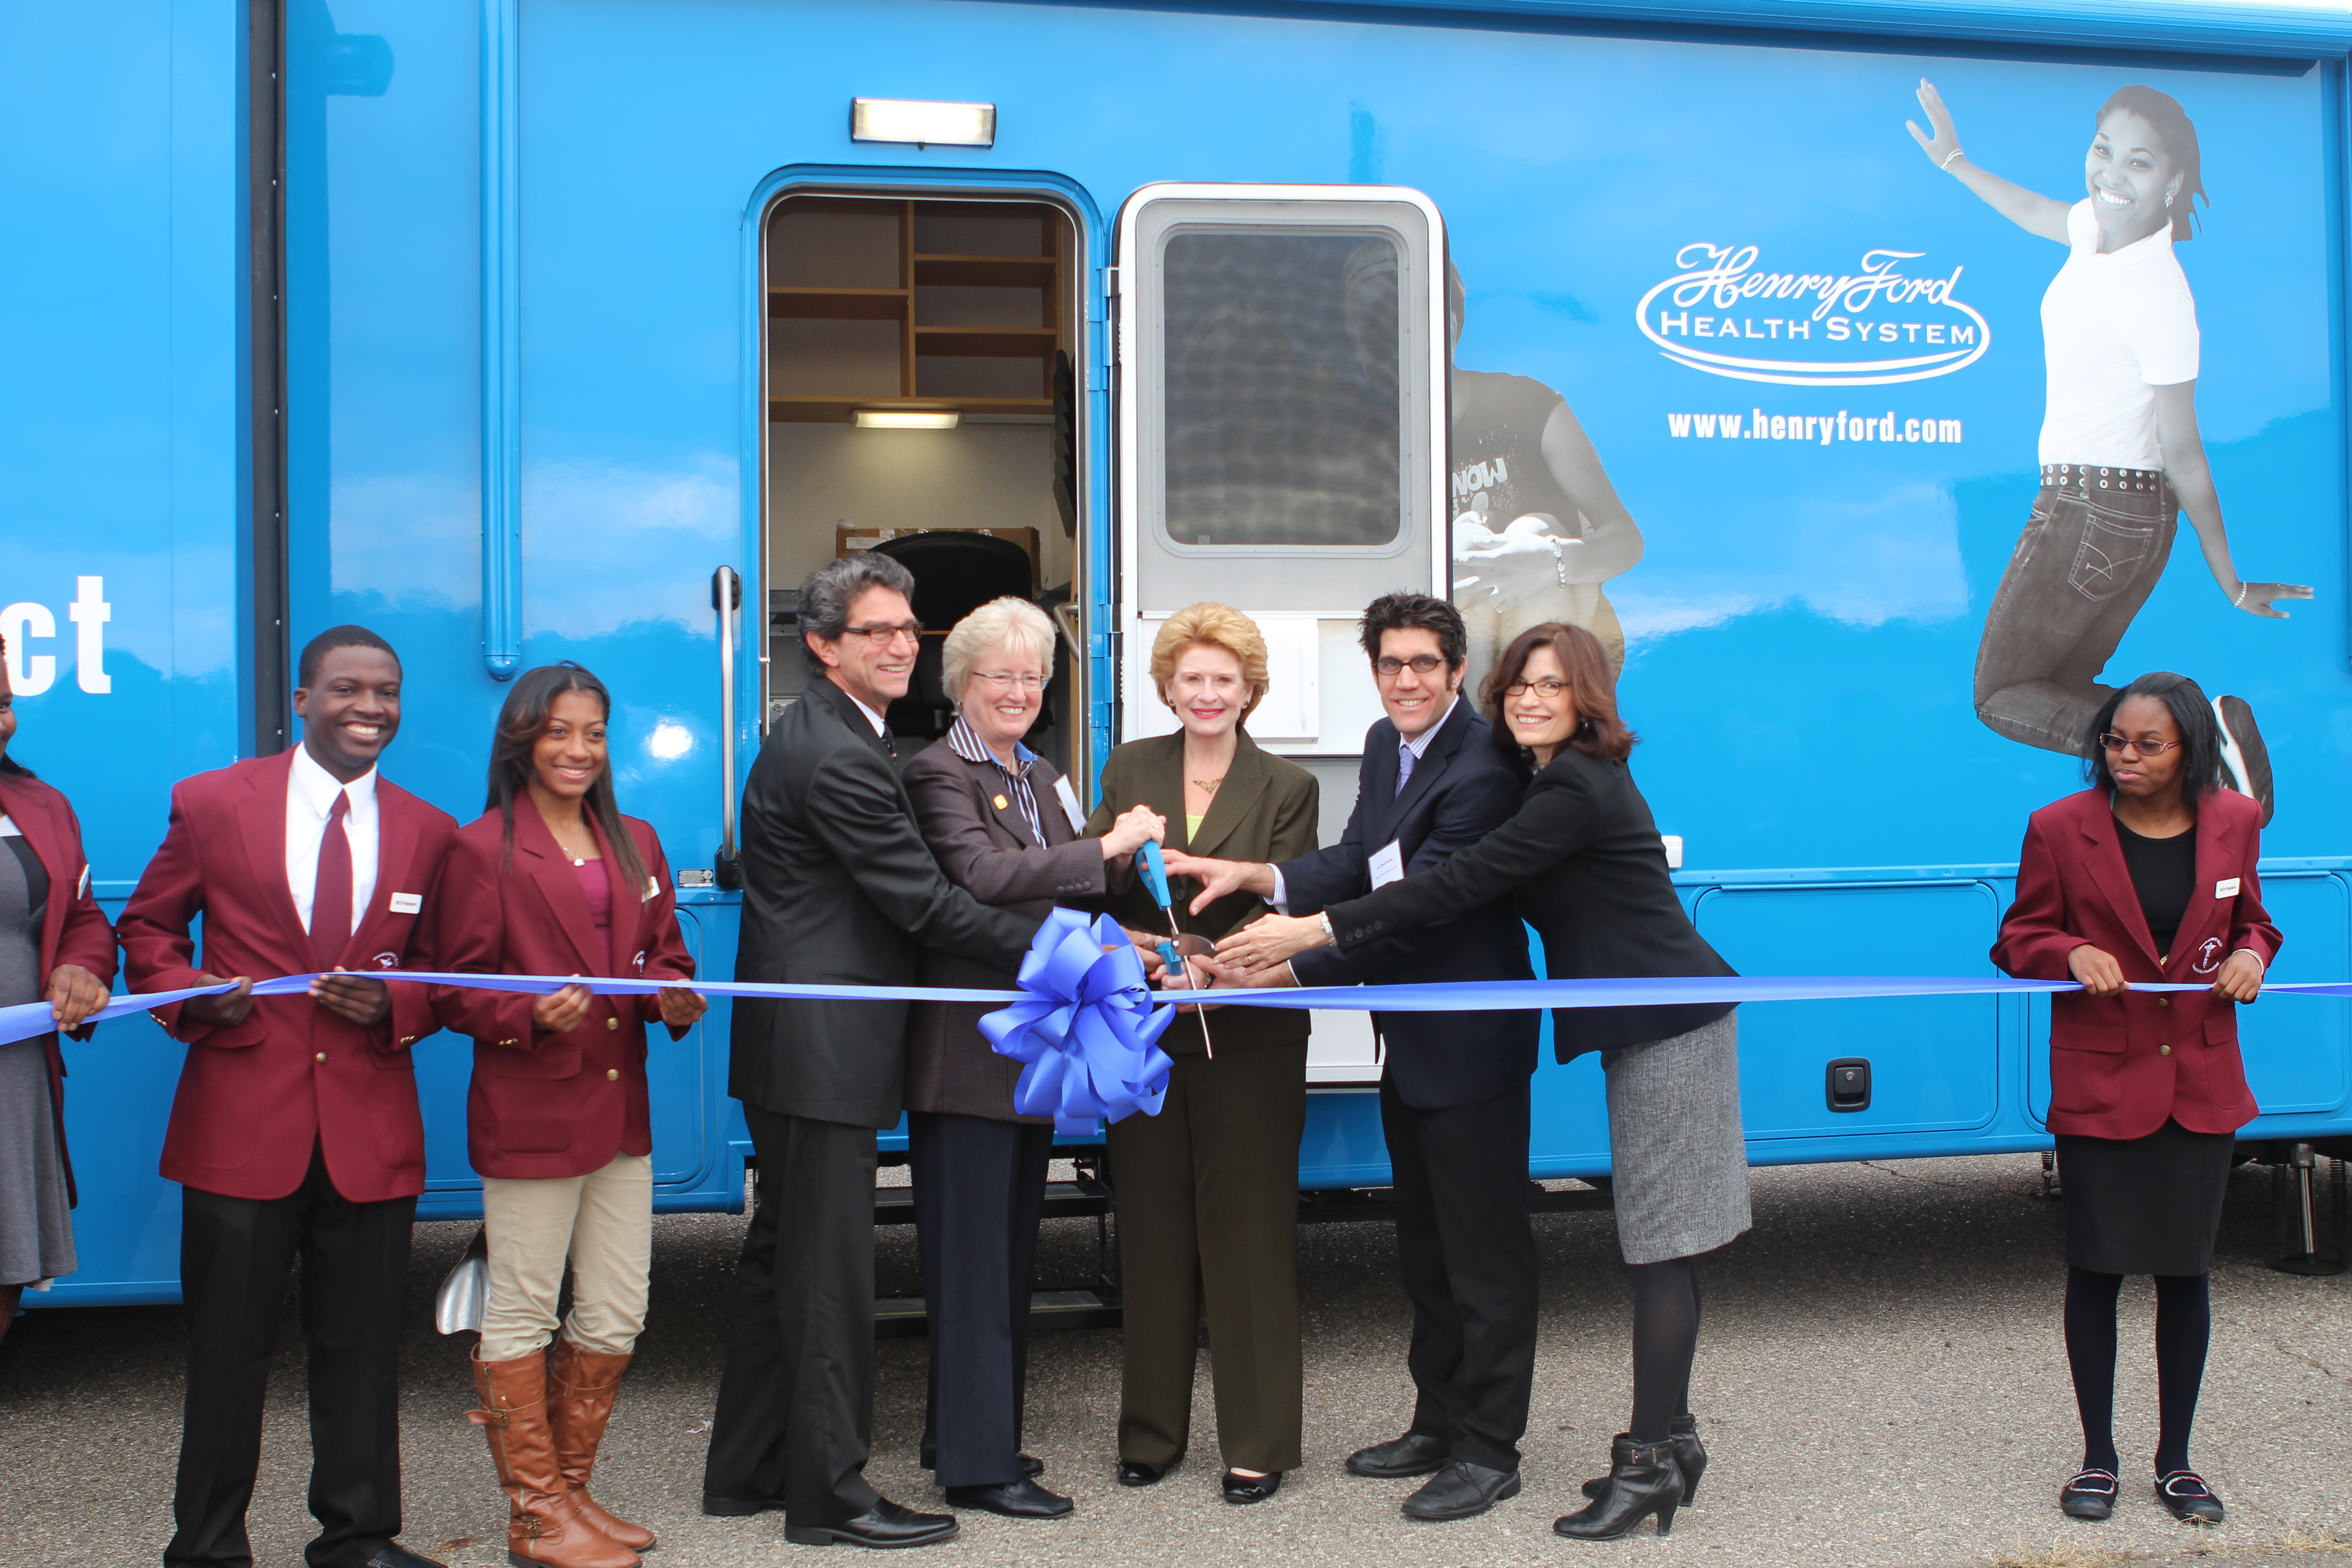 File:Launching a new mobile medical clinic (10708874824) jpg